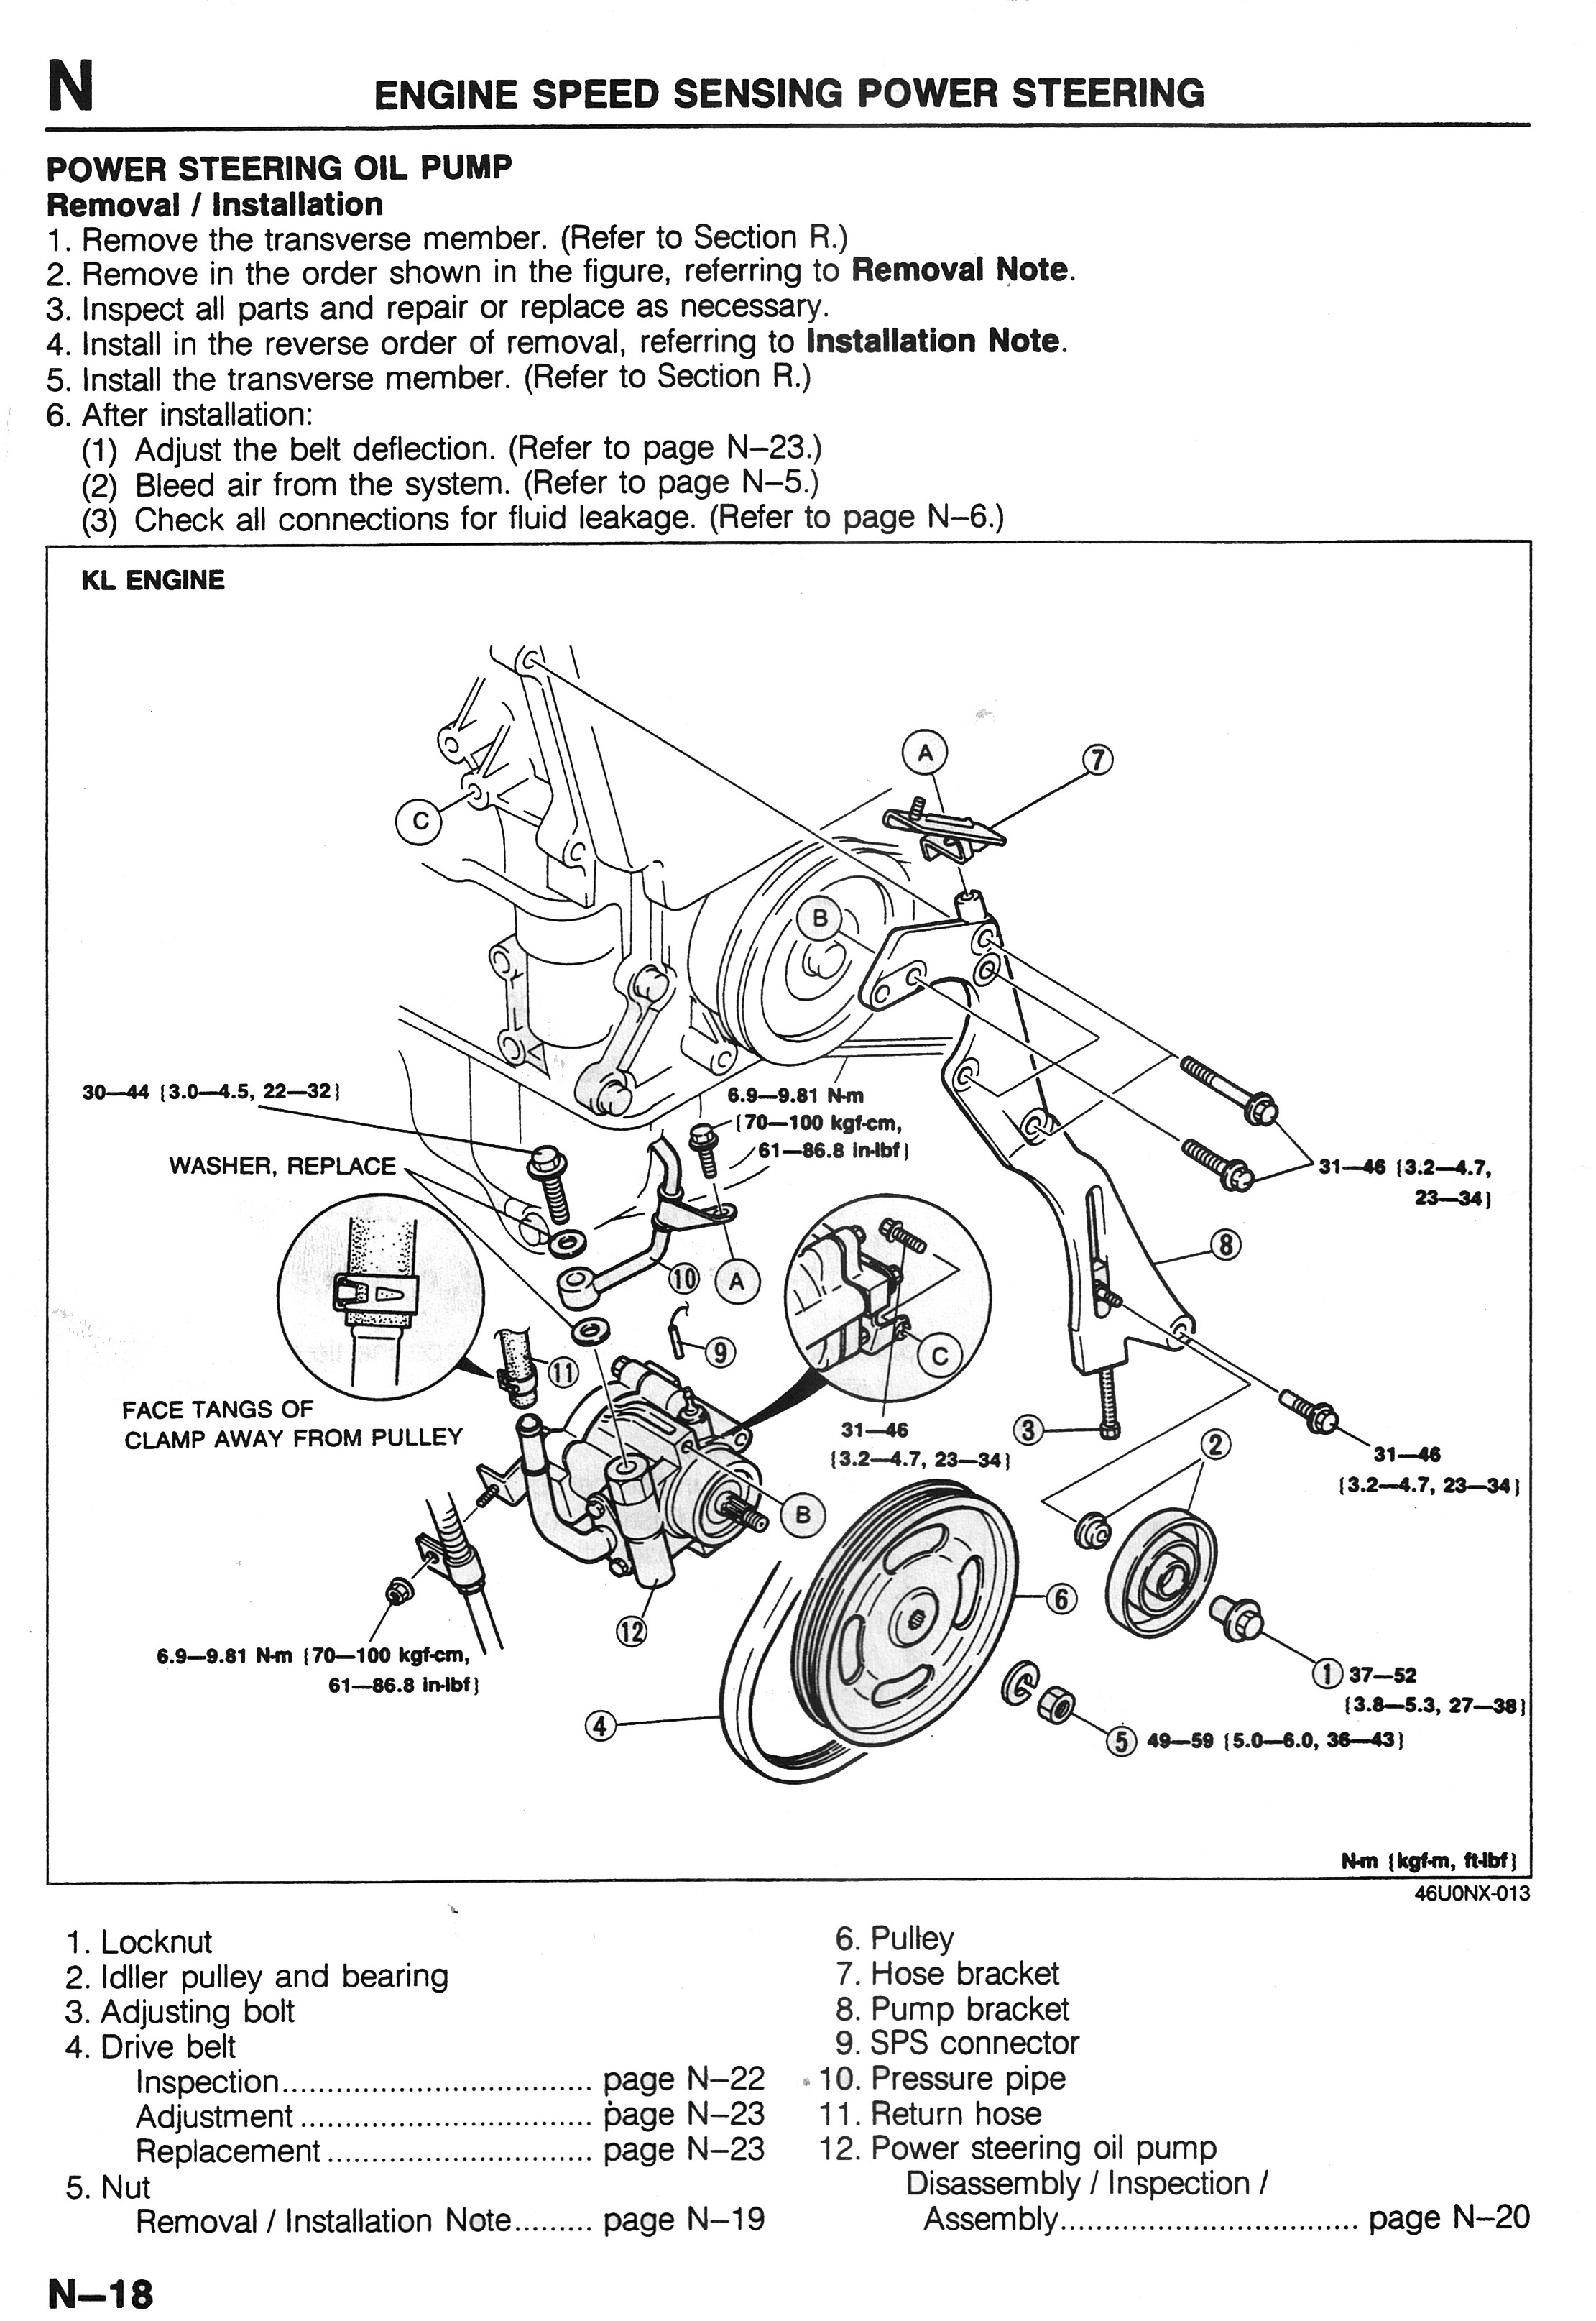 2001 Mazda Millenia Engine Diagram Power Steering Pump Repair Info 1993  2002 2 5l V6 Mazda626